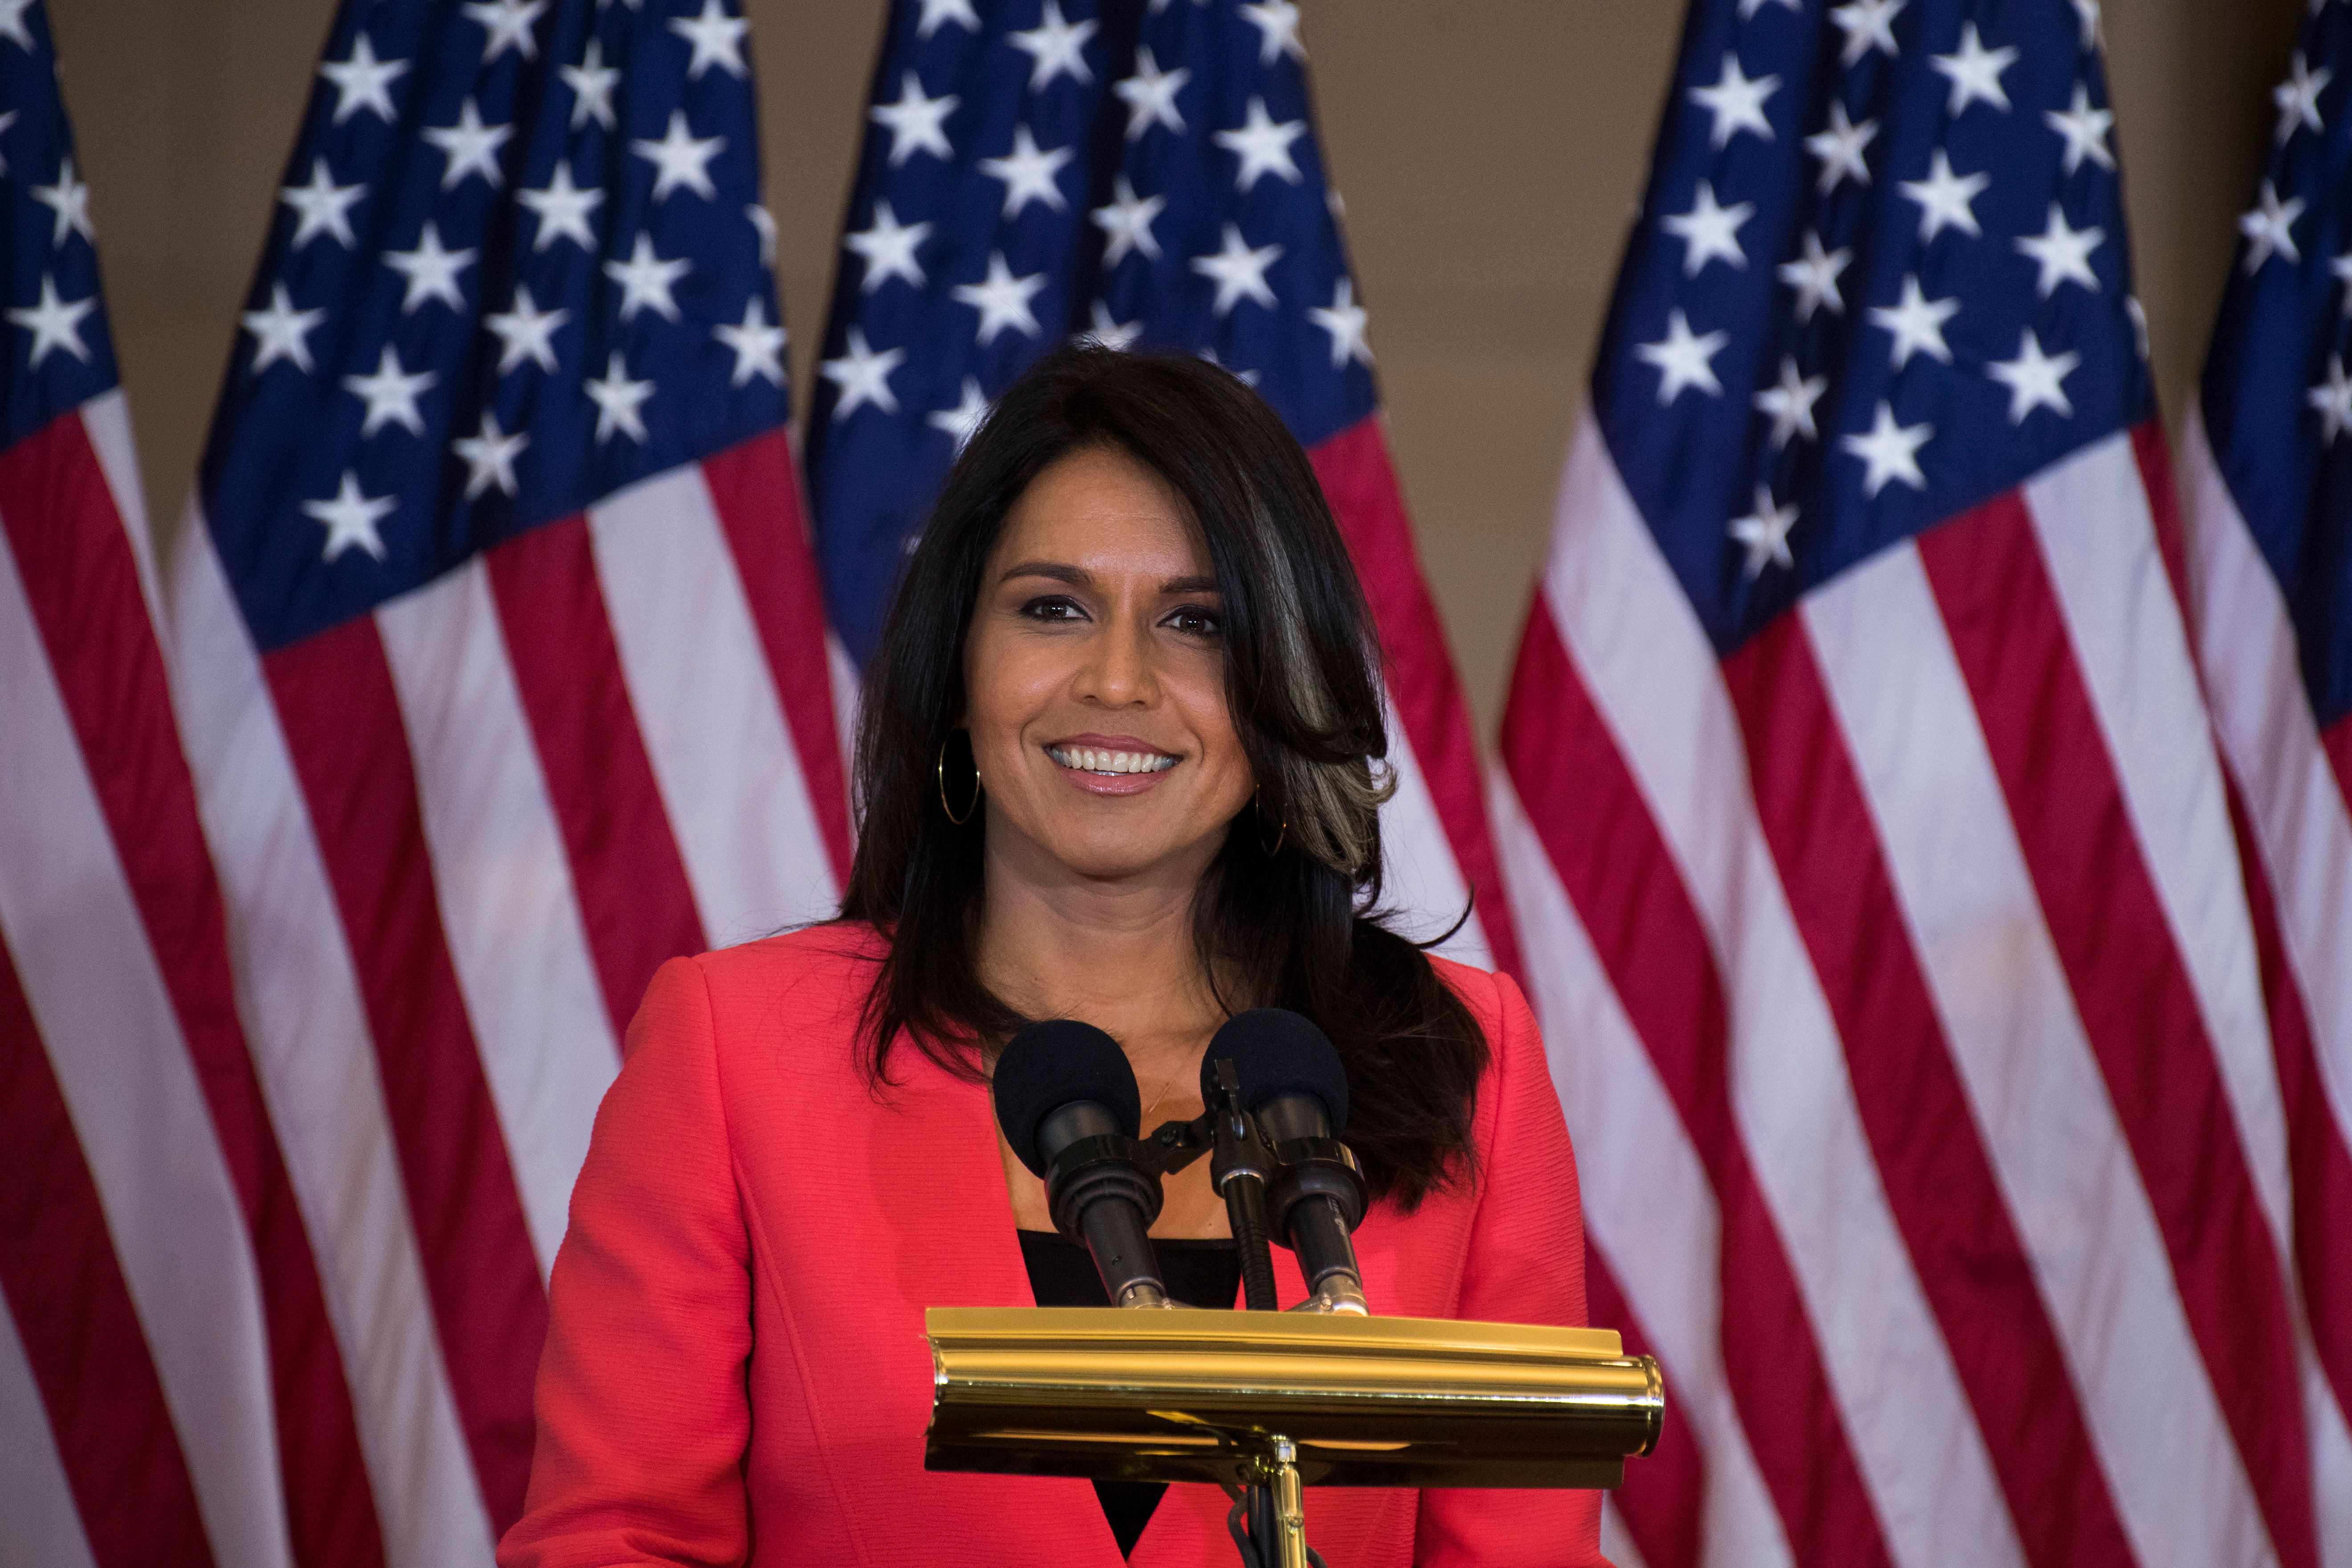 Rep. Tulsi Gabbard (D-Hawaii), here at a Washington ceremony last fall, says she has asked to be listed as a co-sponsor of th